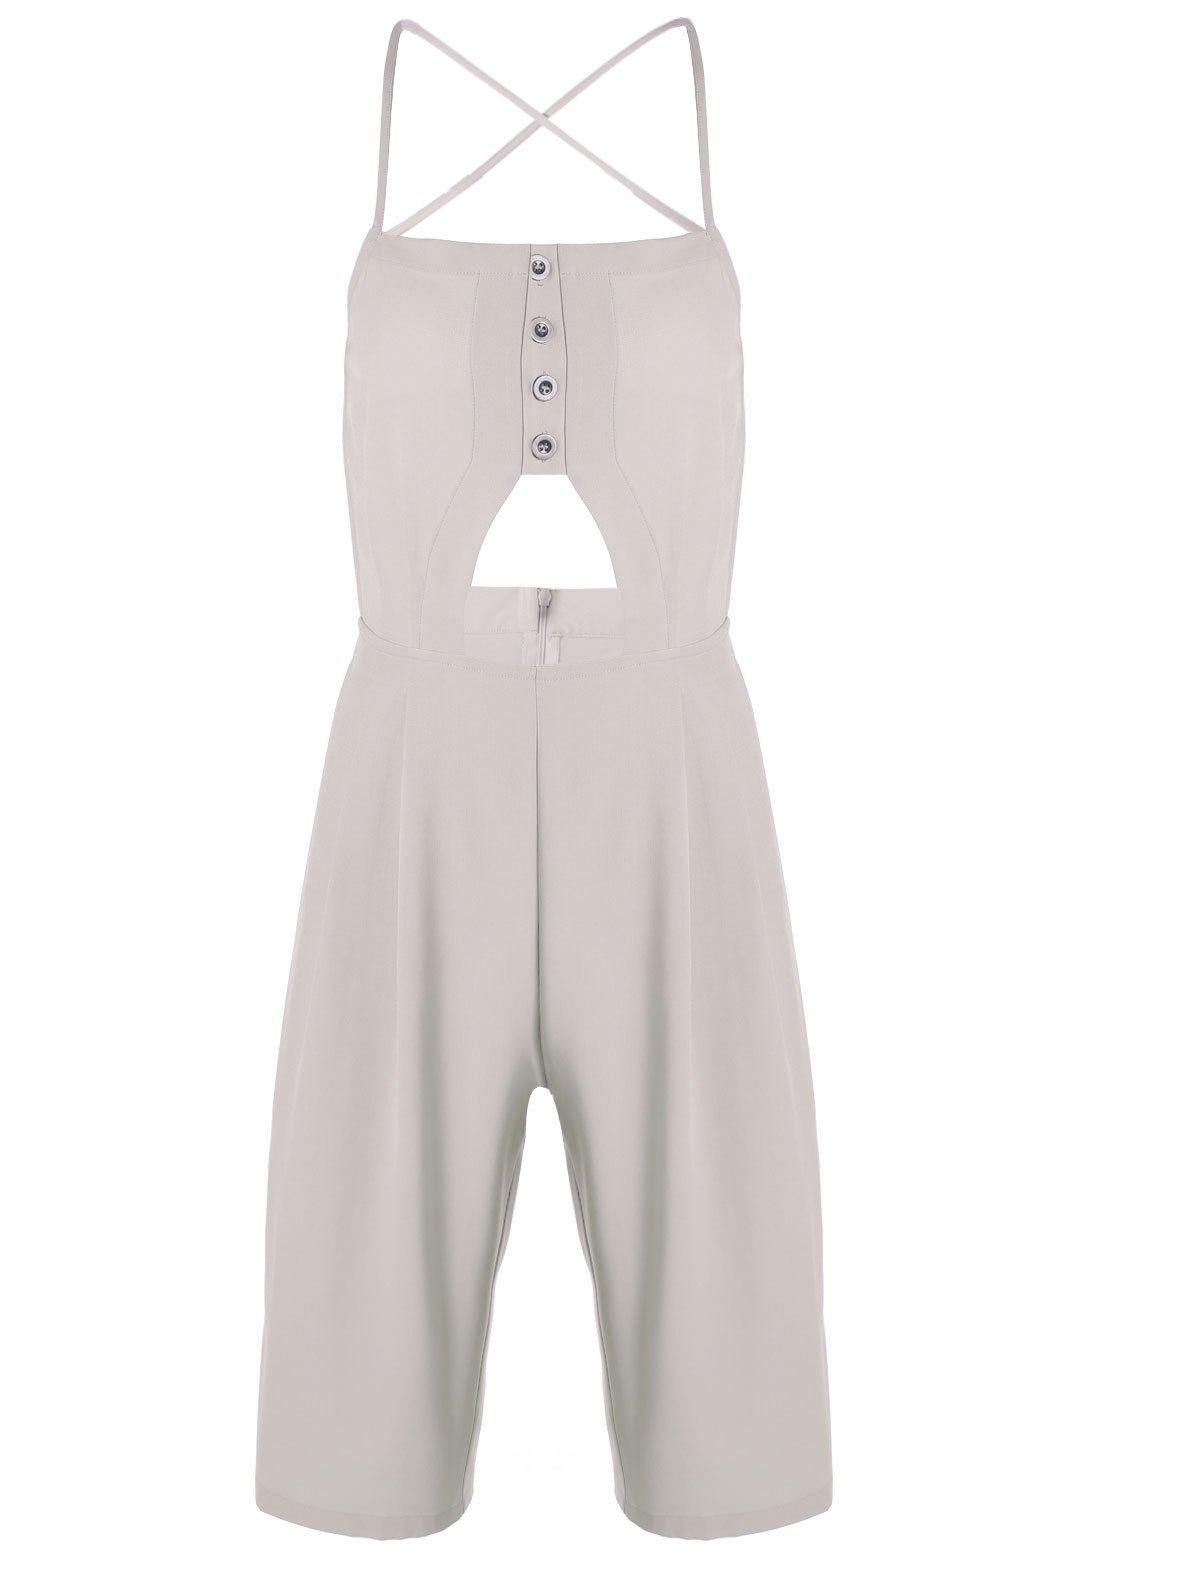 Trendy Apricot Spaghetti Strap Backless Jumpsuit For Women